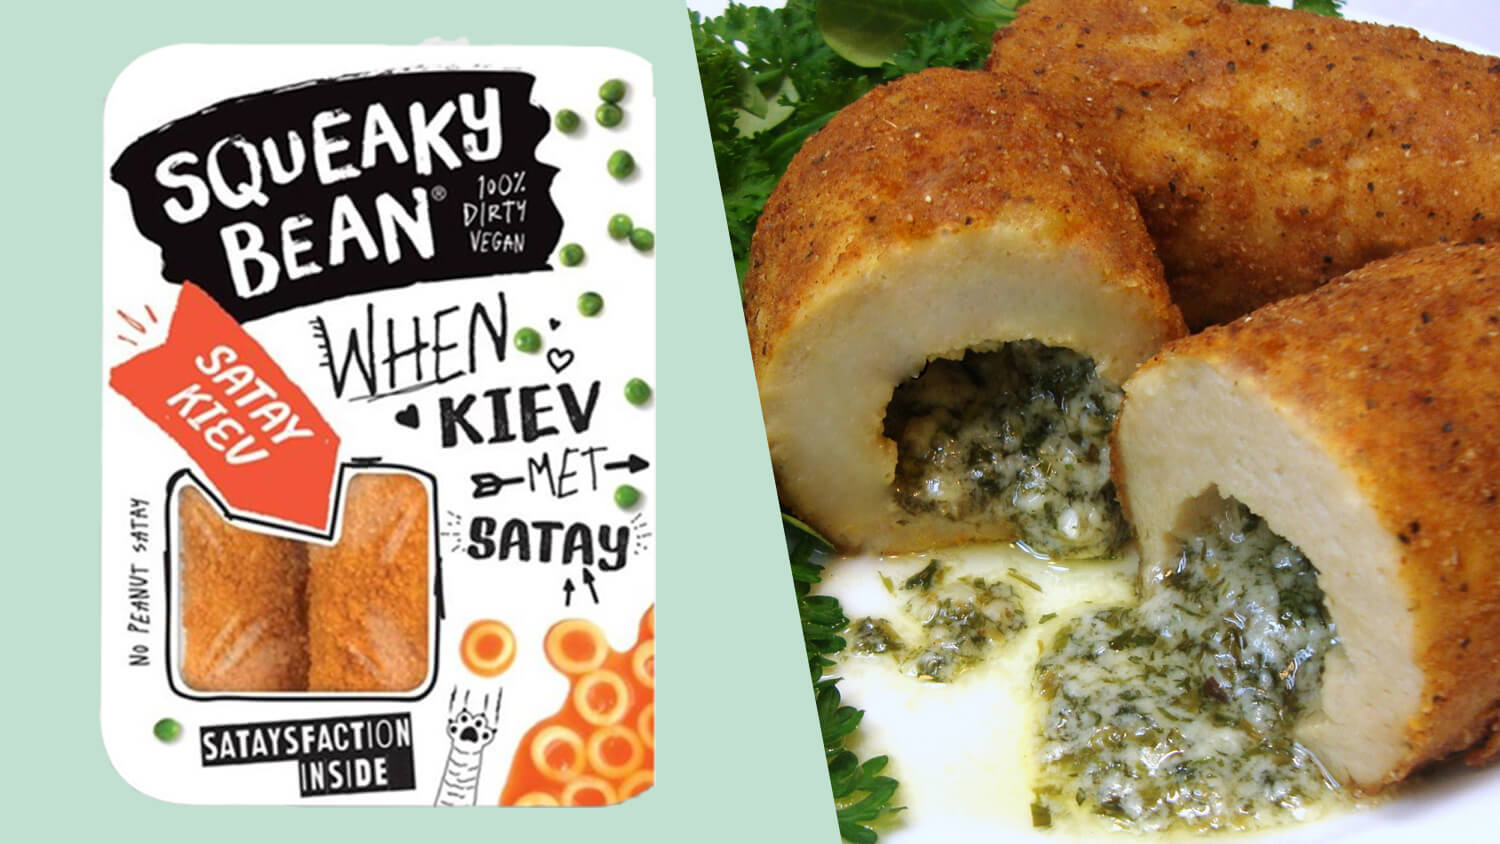 Squeaky Bean Launches Vegan Range Featuring Chicken Satay Kiev and Nuggets